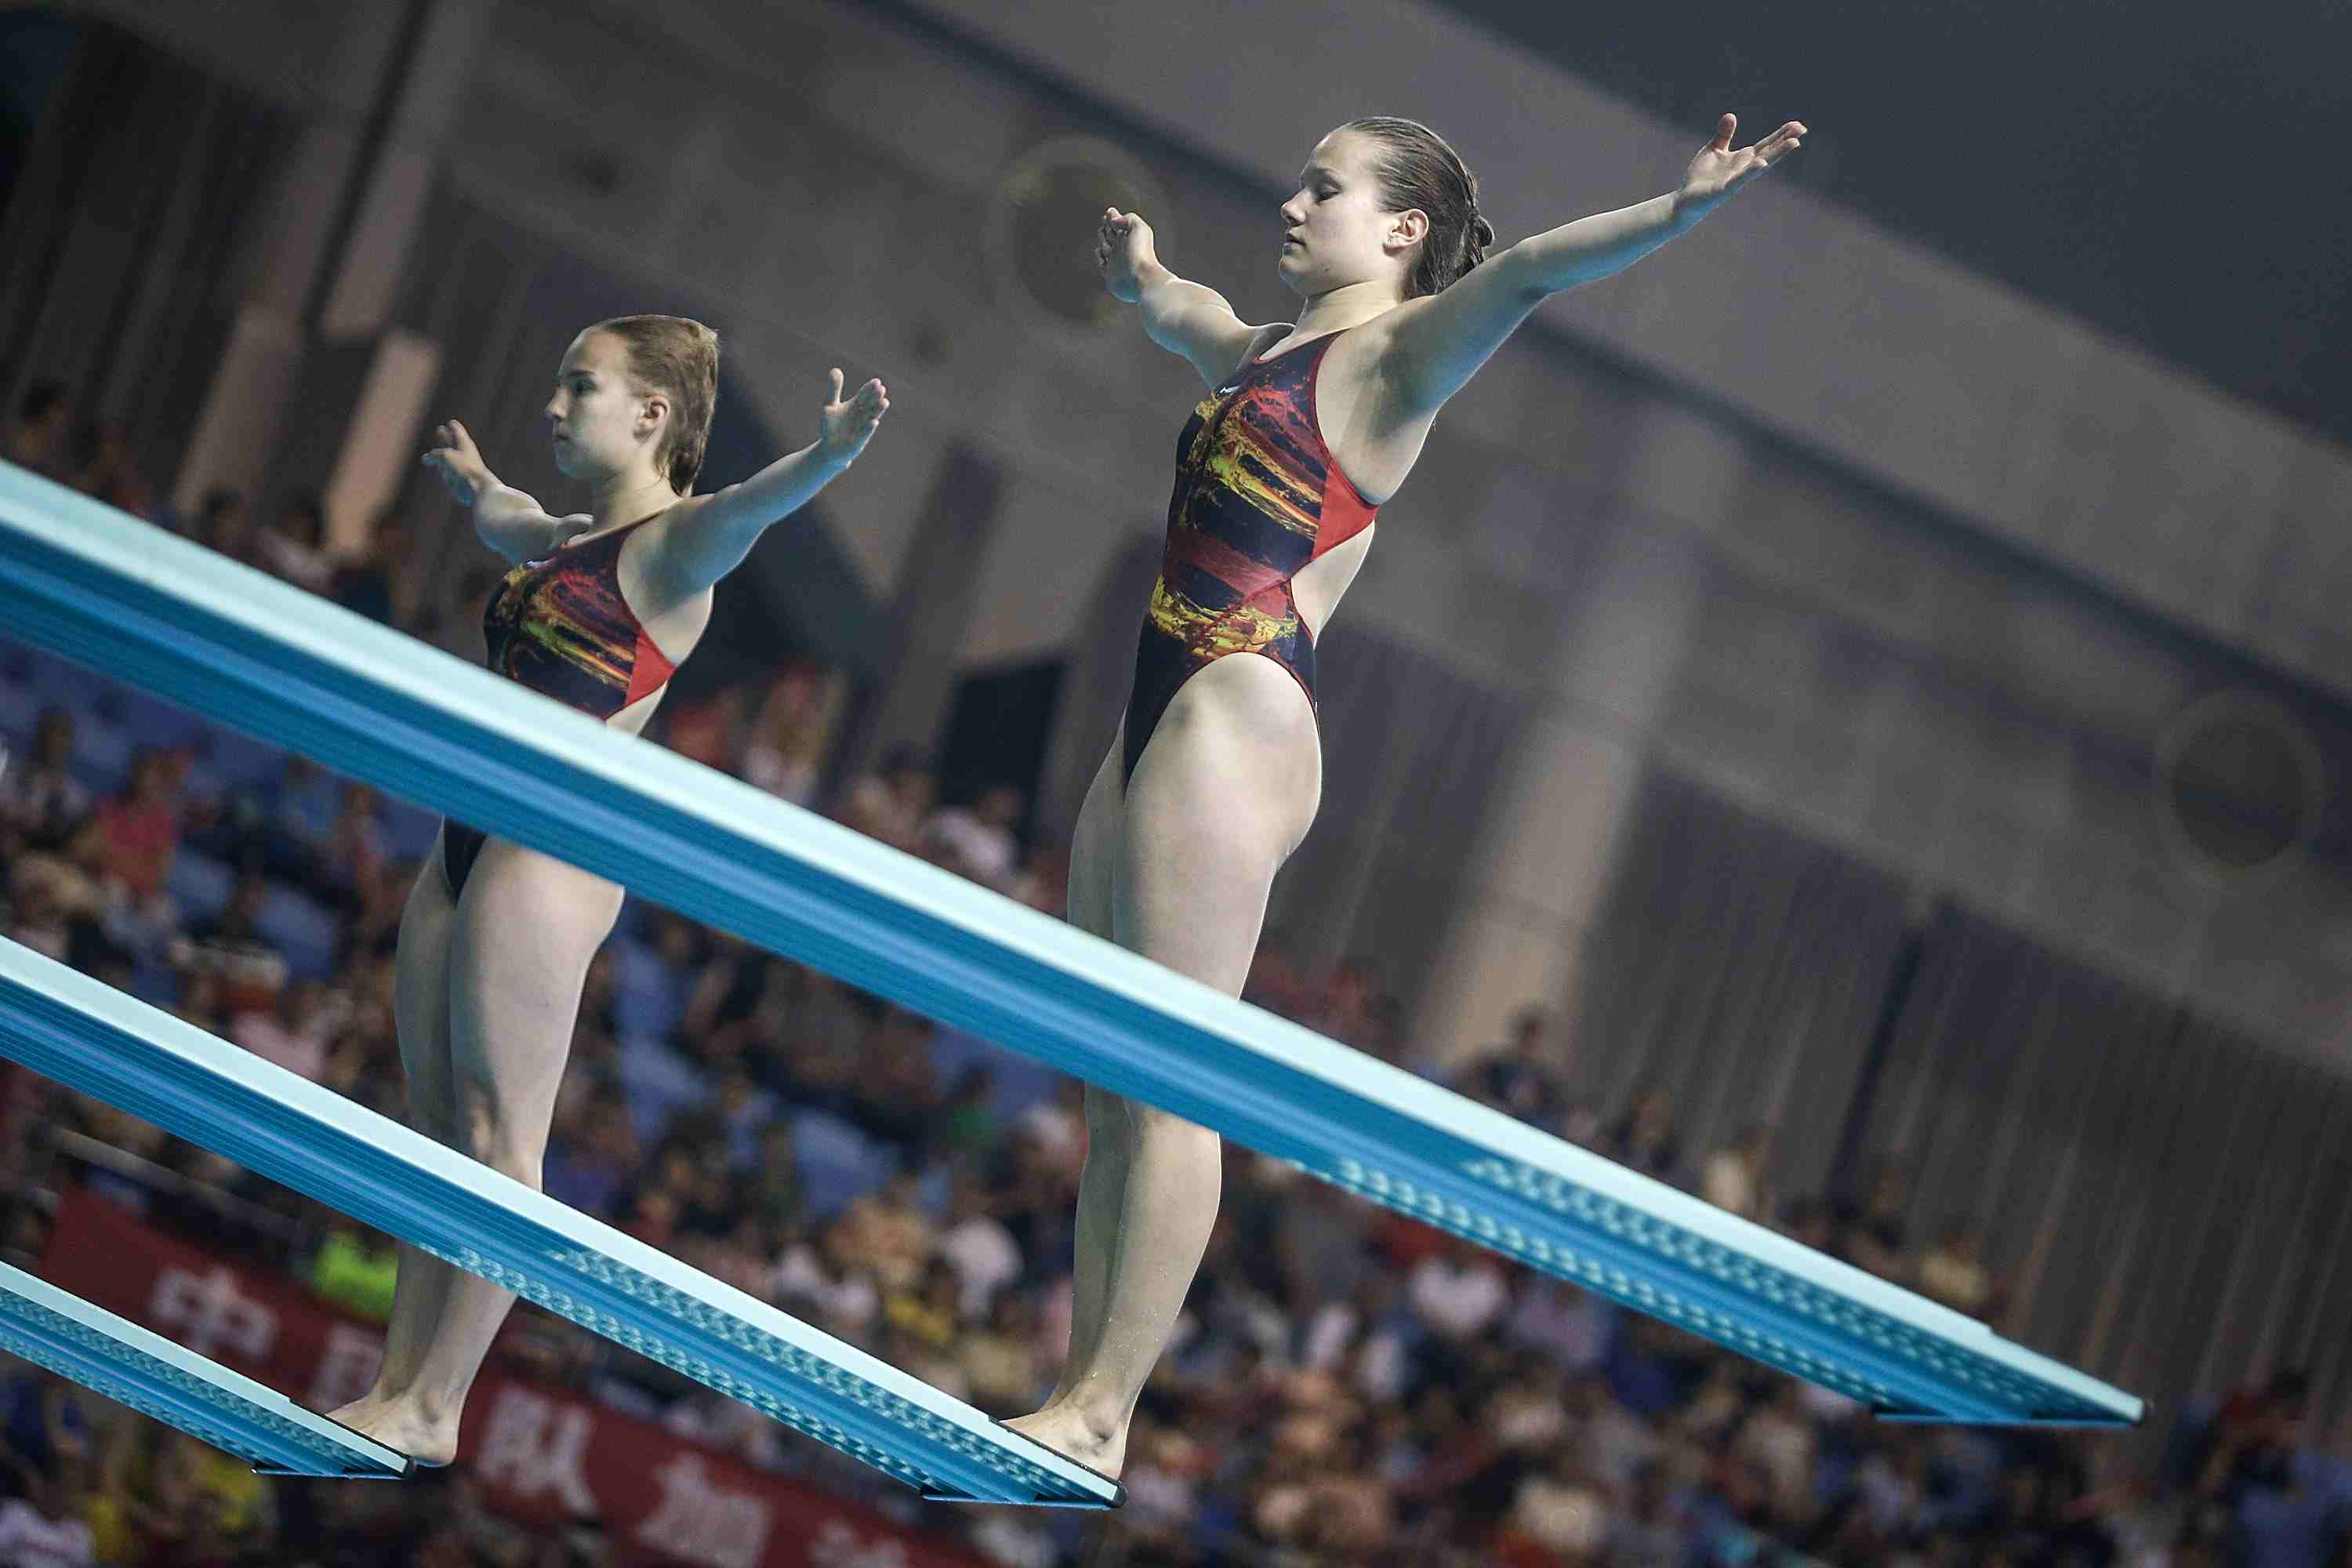 Synchronized divers prepare to perform a reverse dive.